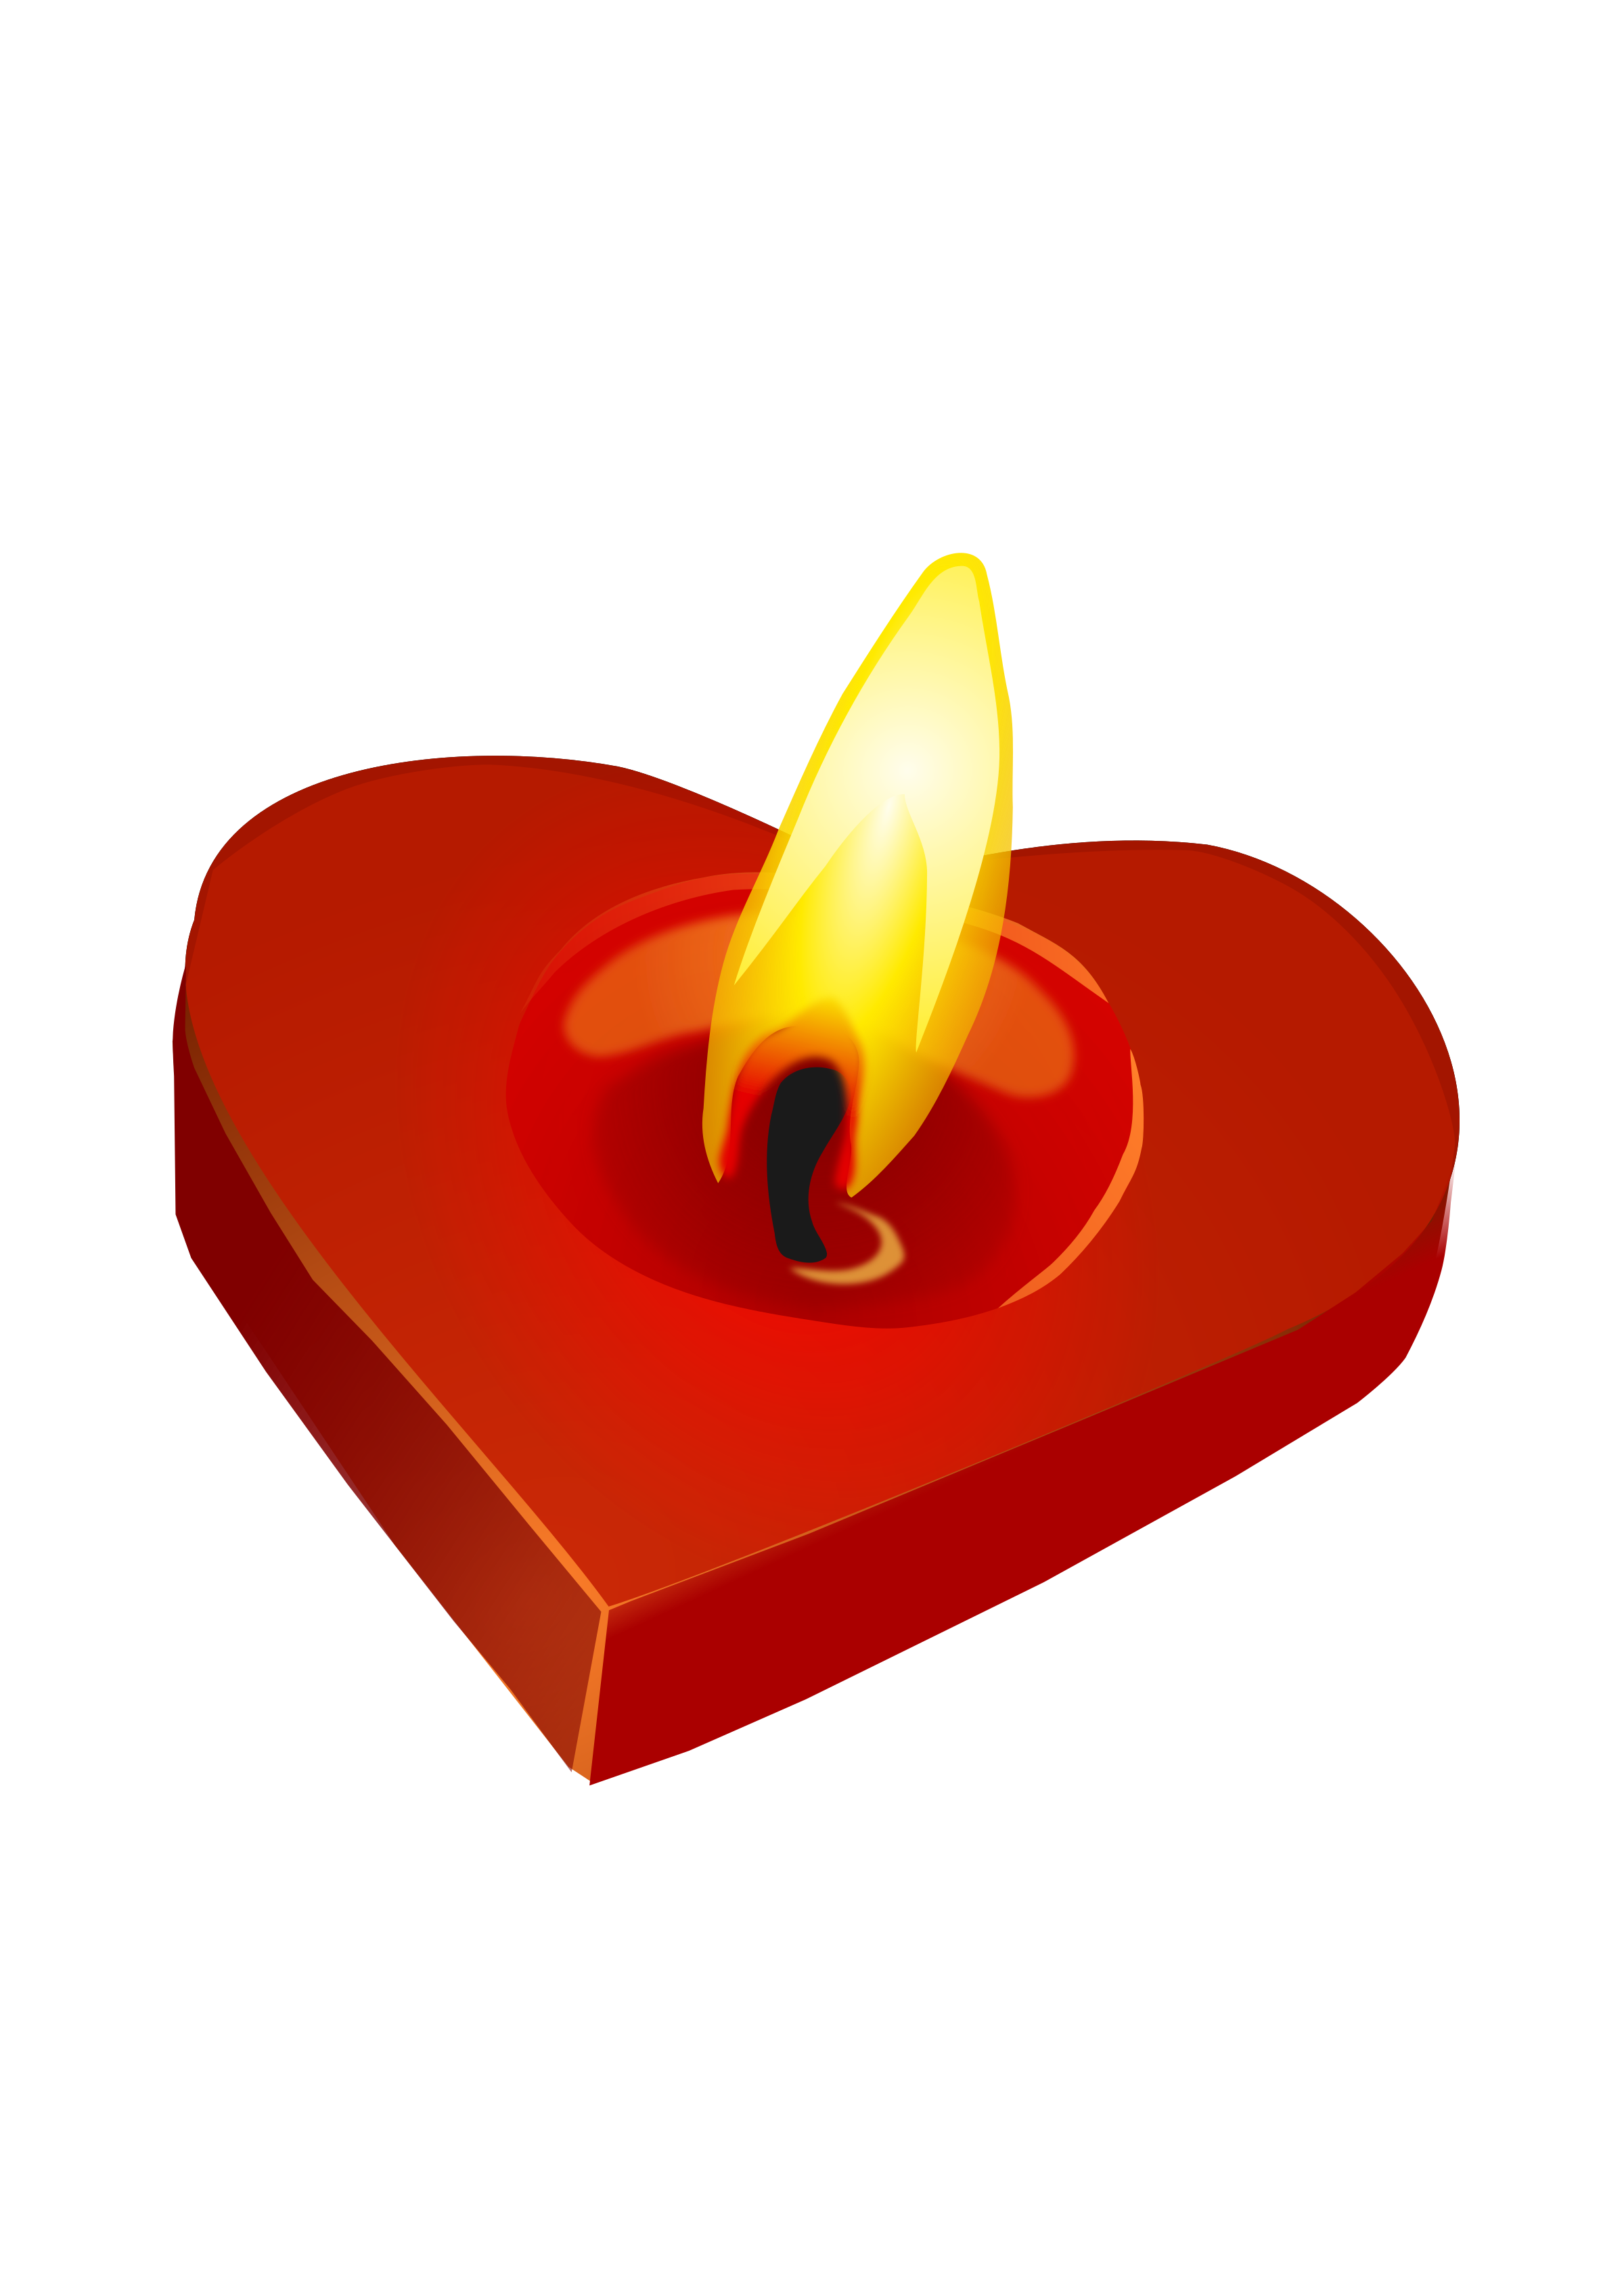 Heart shaped candles png. Valentine s candle icons